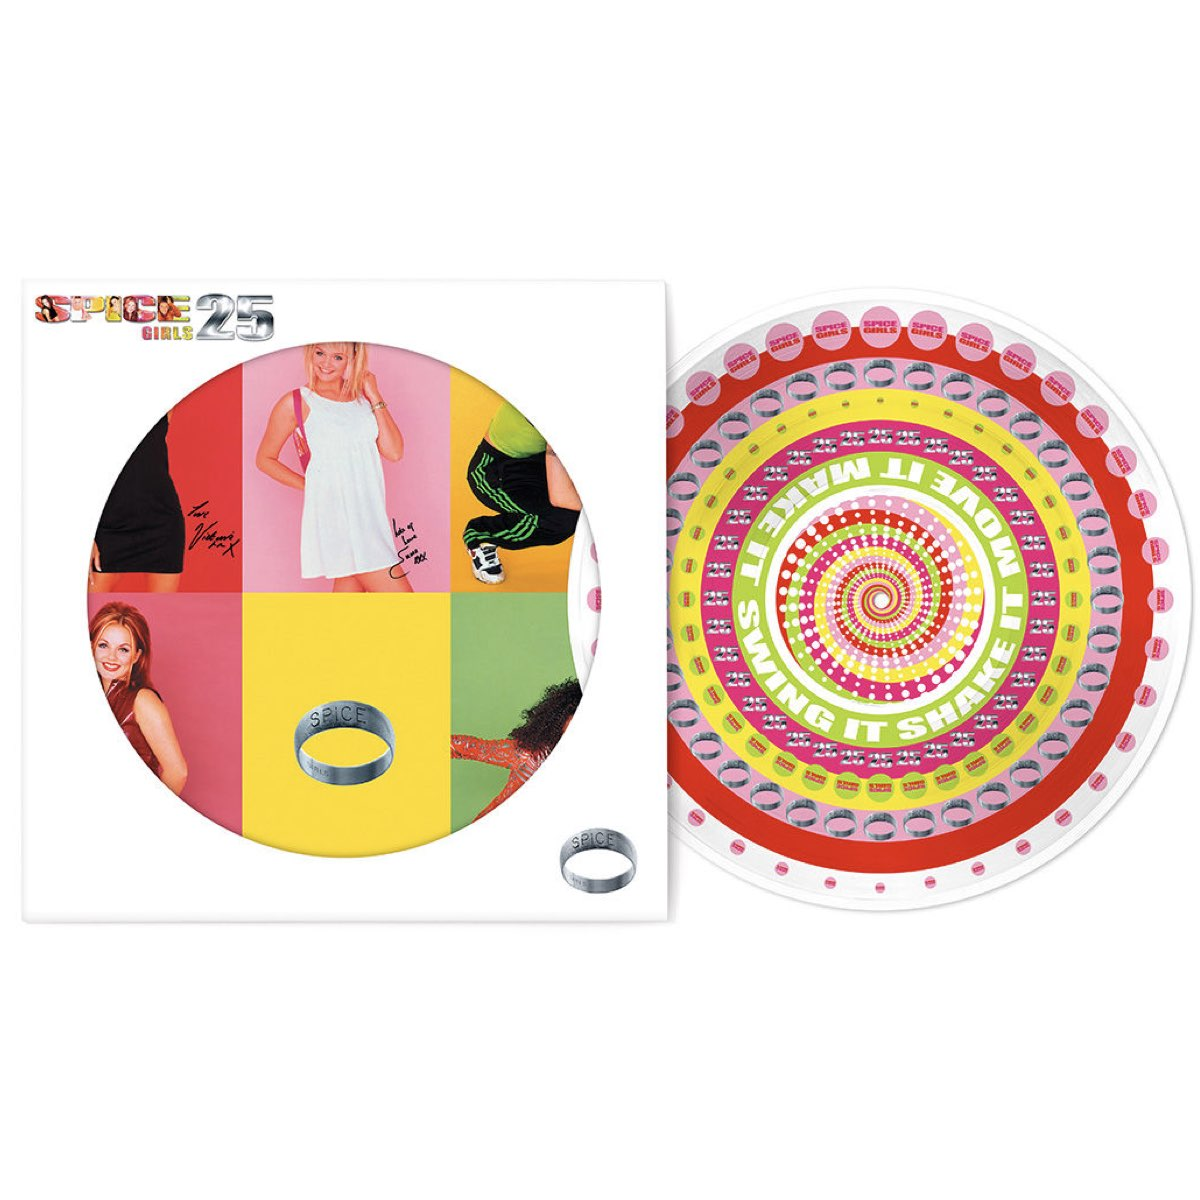 Spice Girls - Spice - 25th Anniversary [Zoetrope Picture Disc]